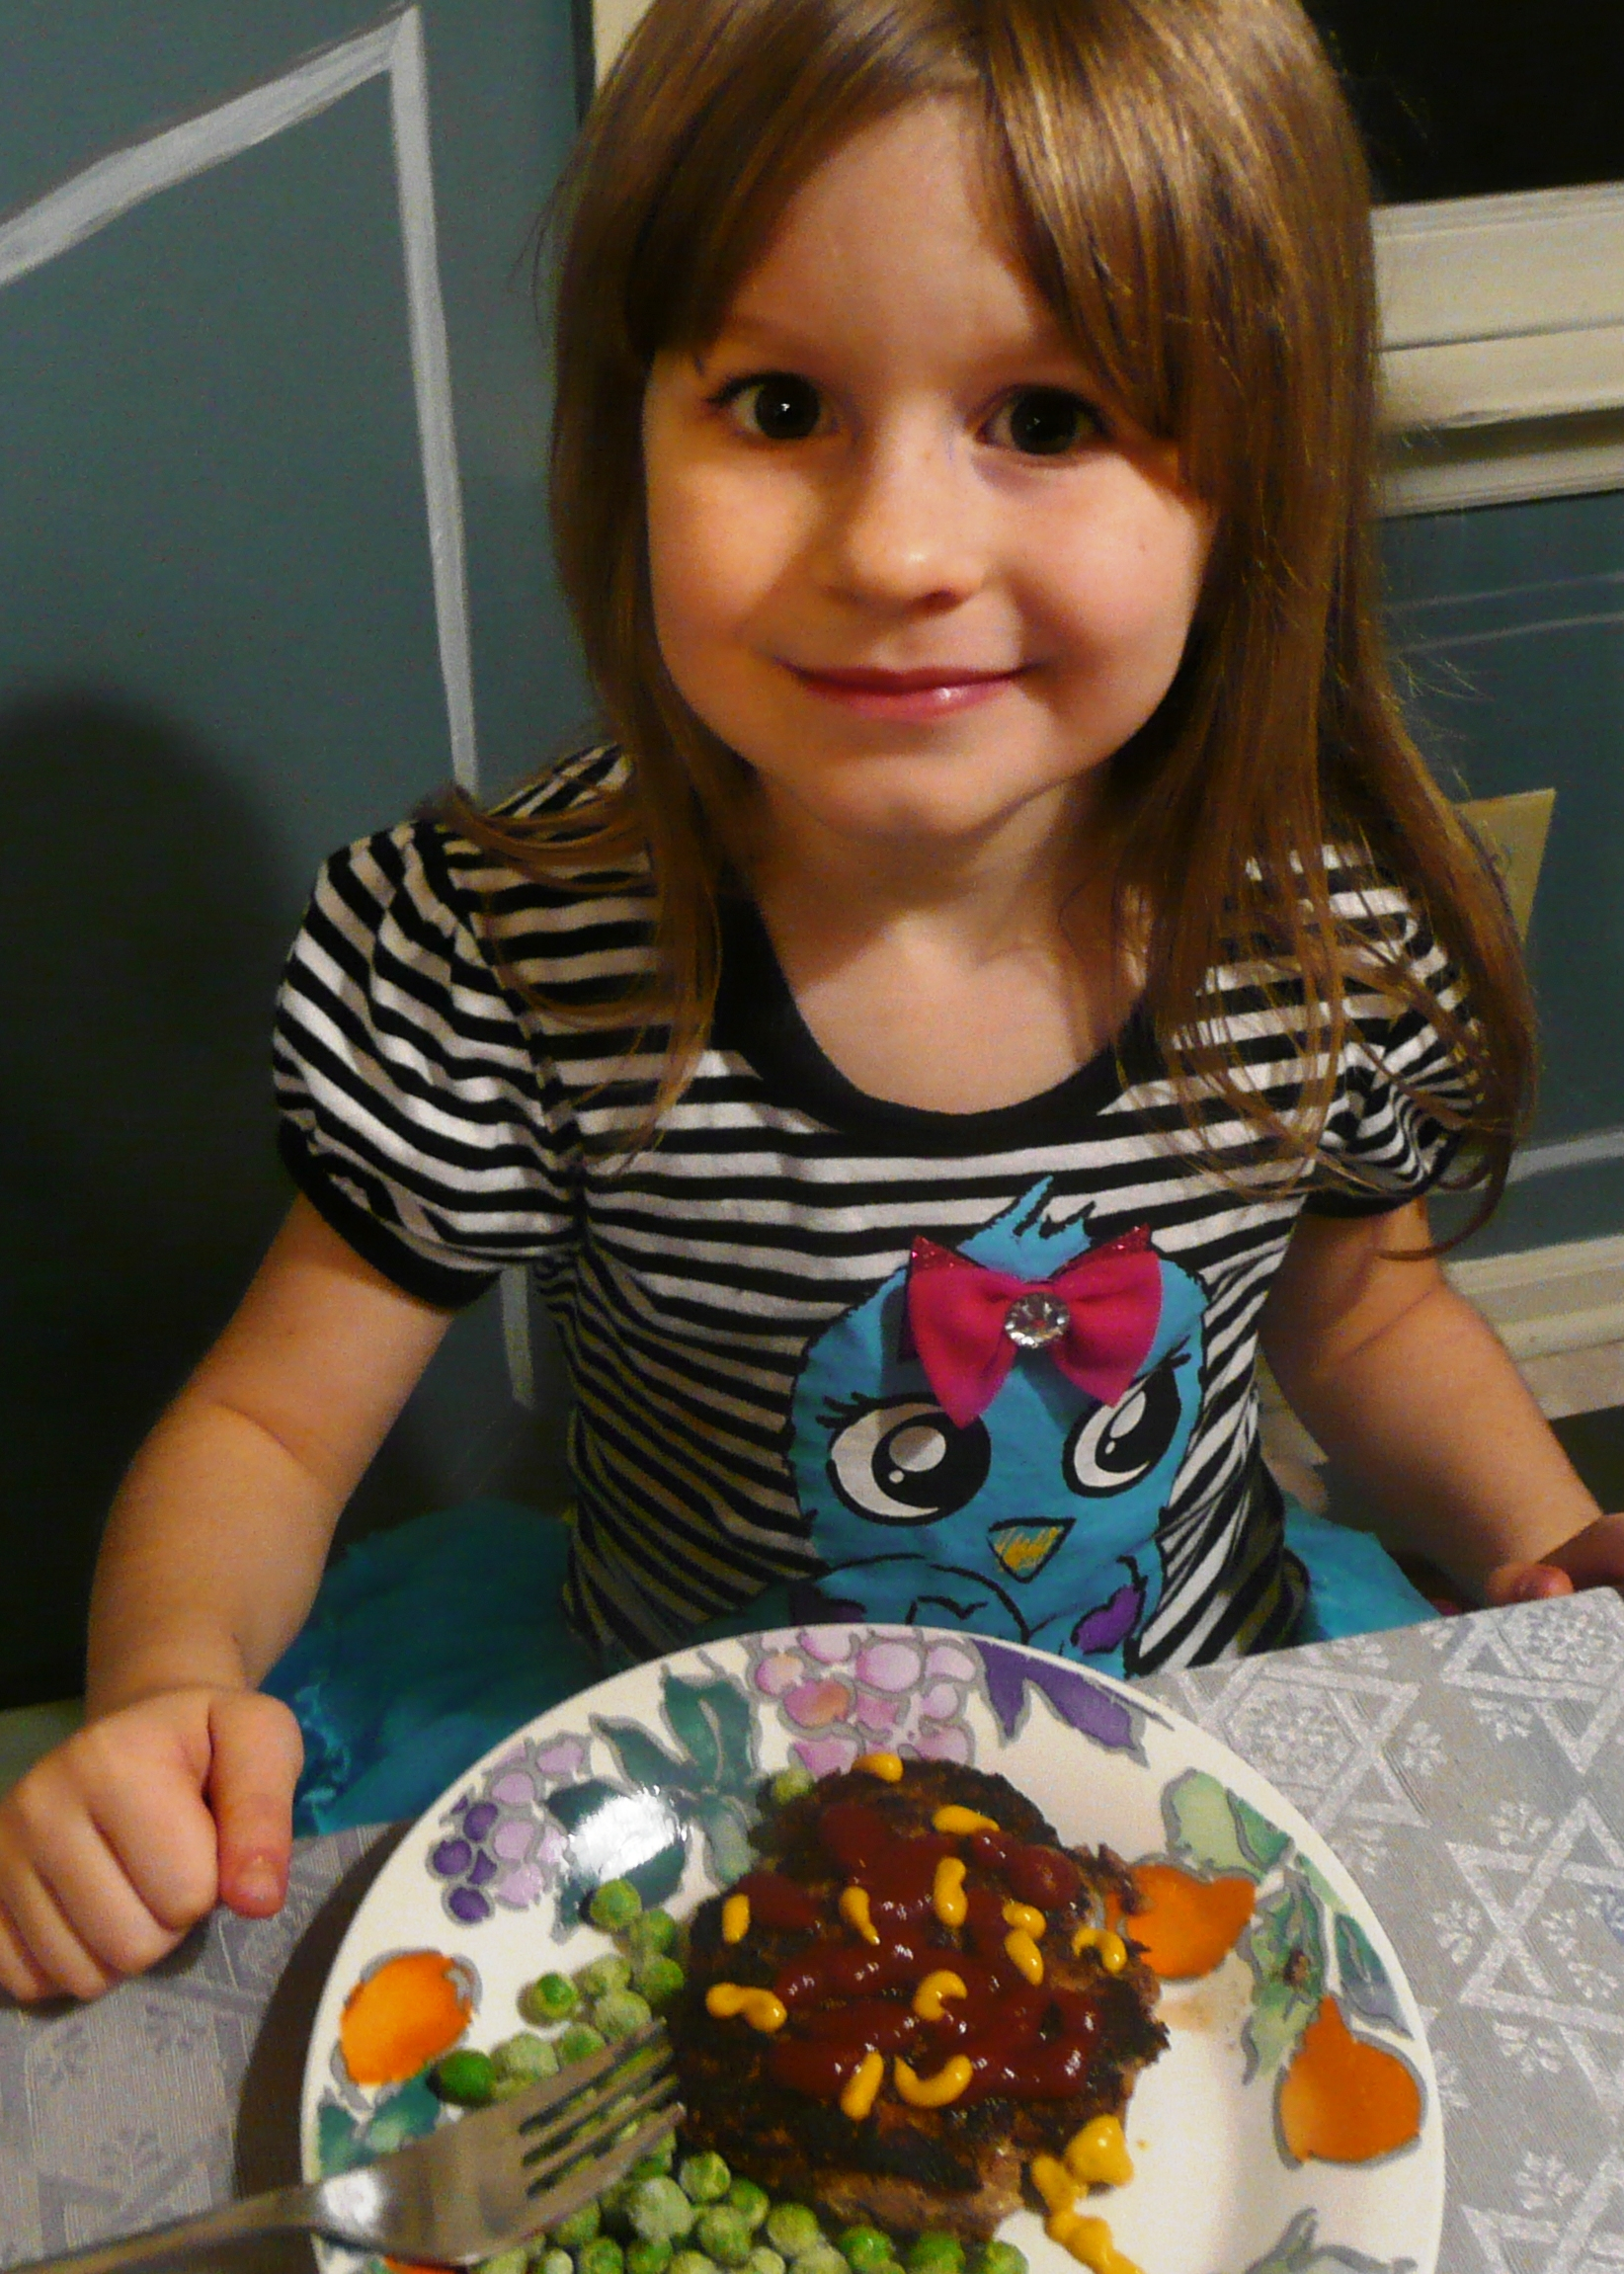 This is my beautiful girl and she told me she decorated her burger like a fish tank! Of course!